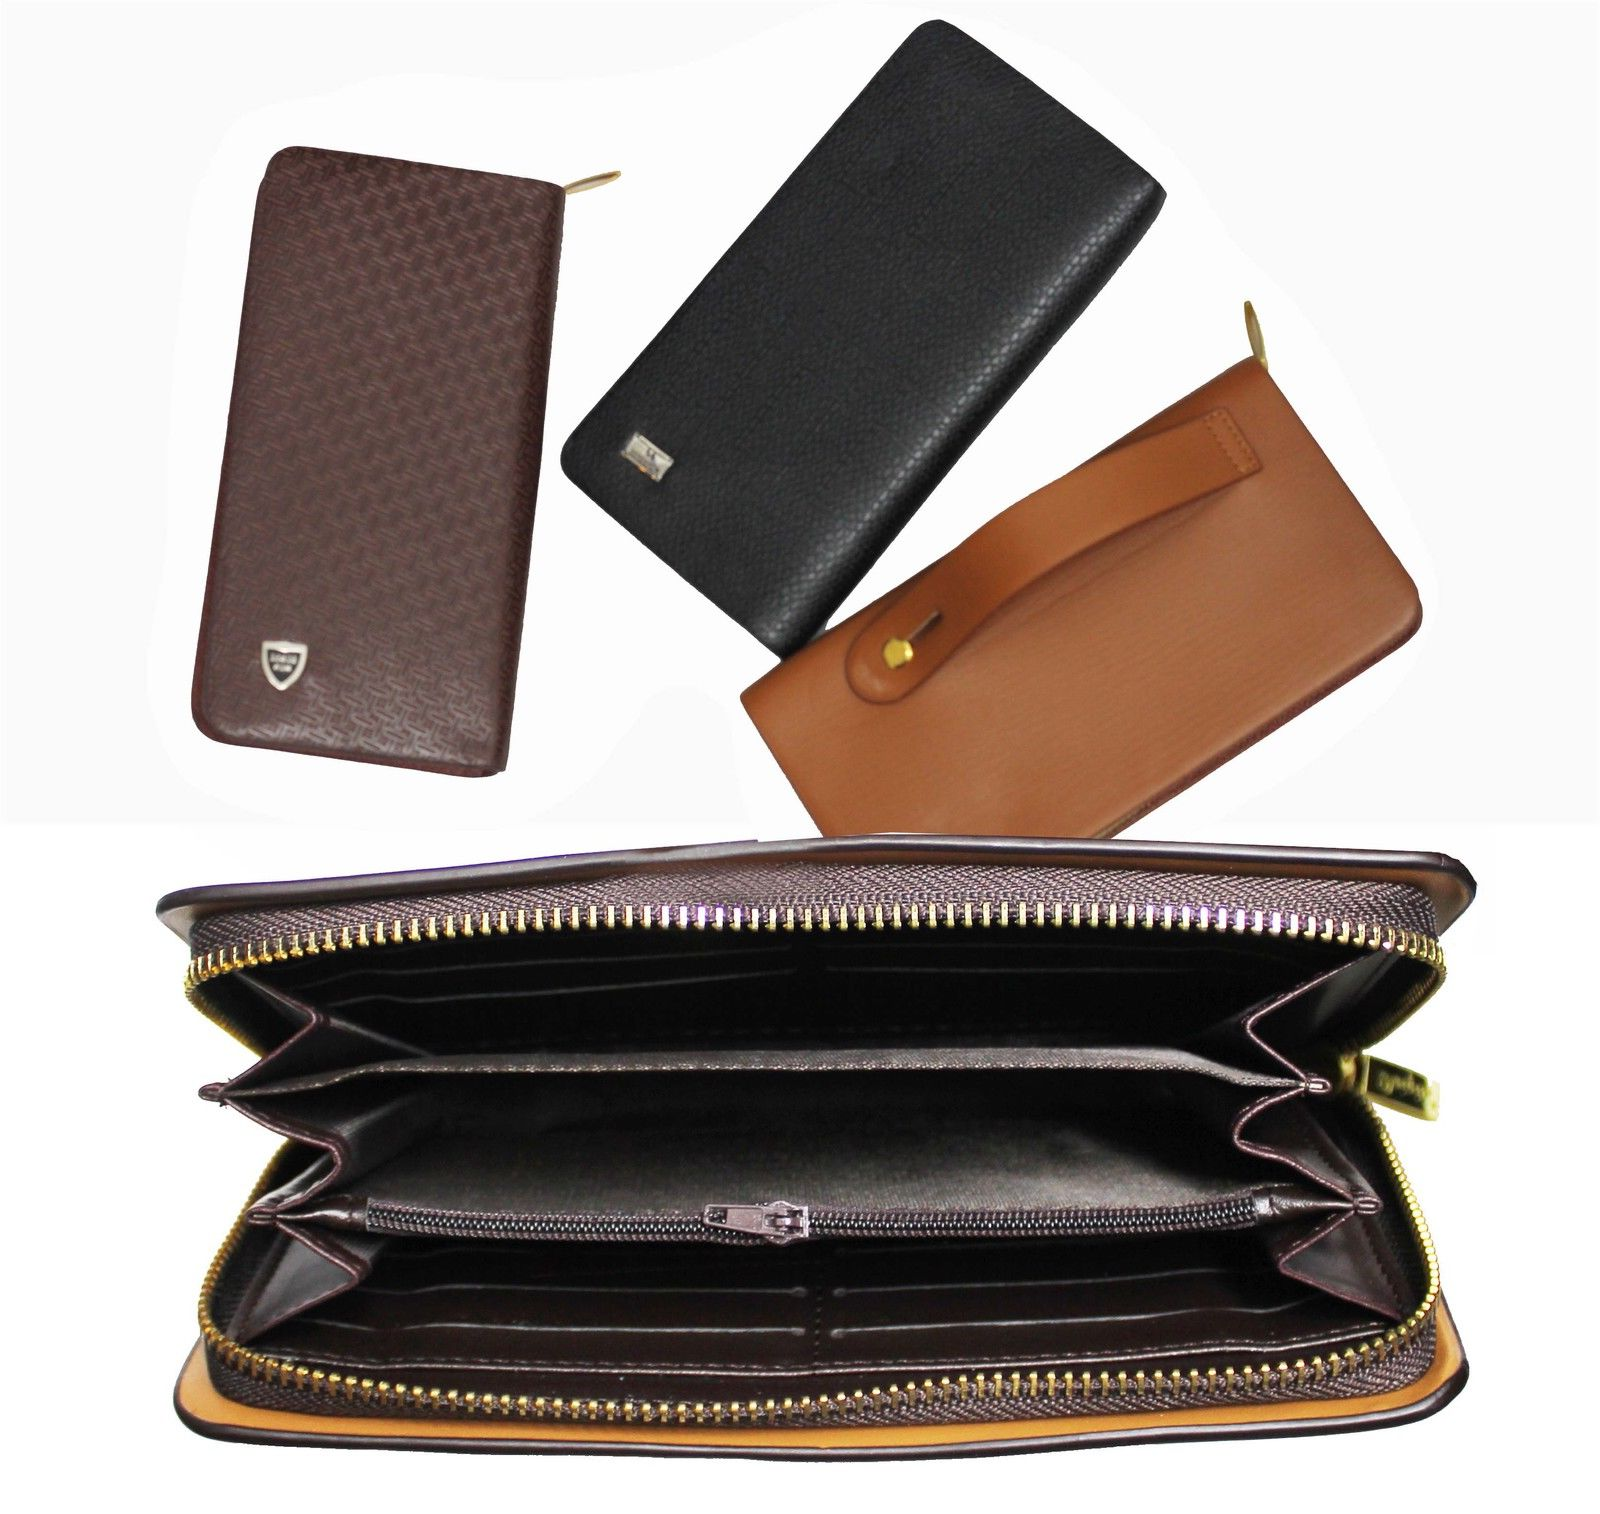 travel wallet goyard wallet hugo boss wallet